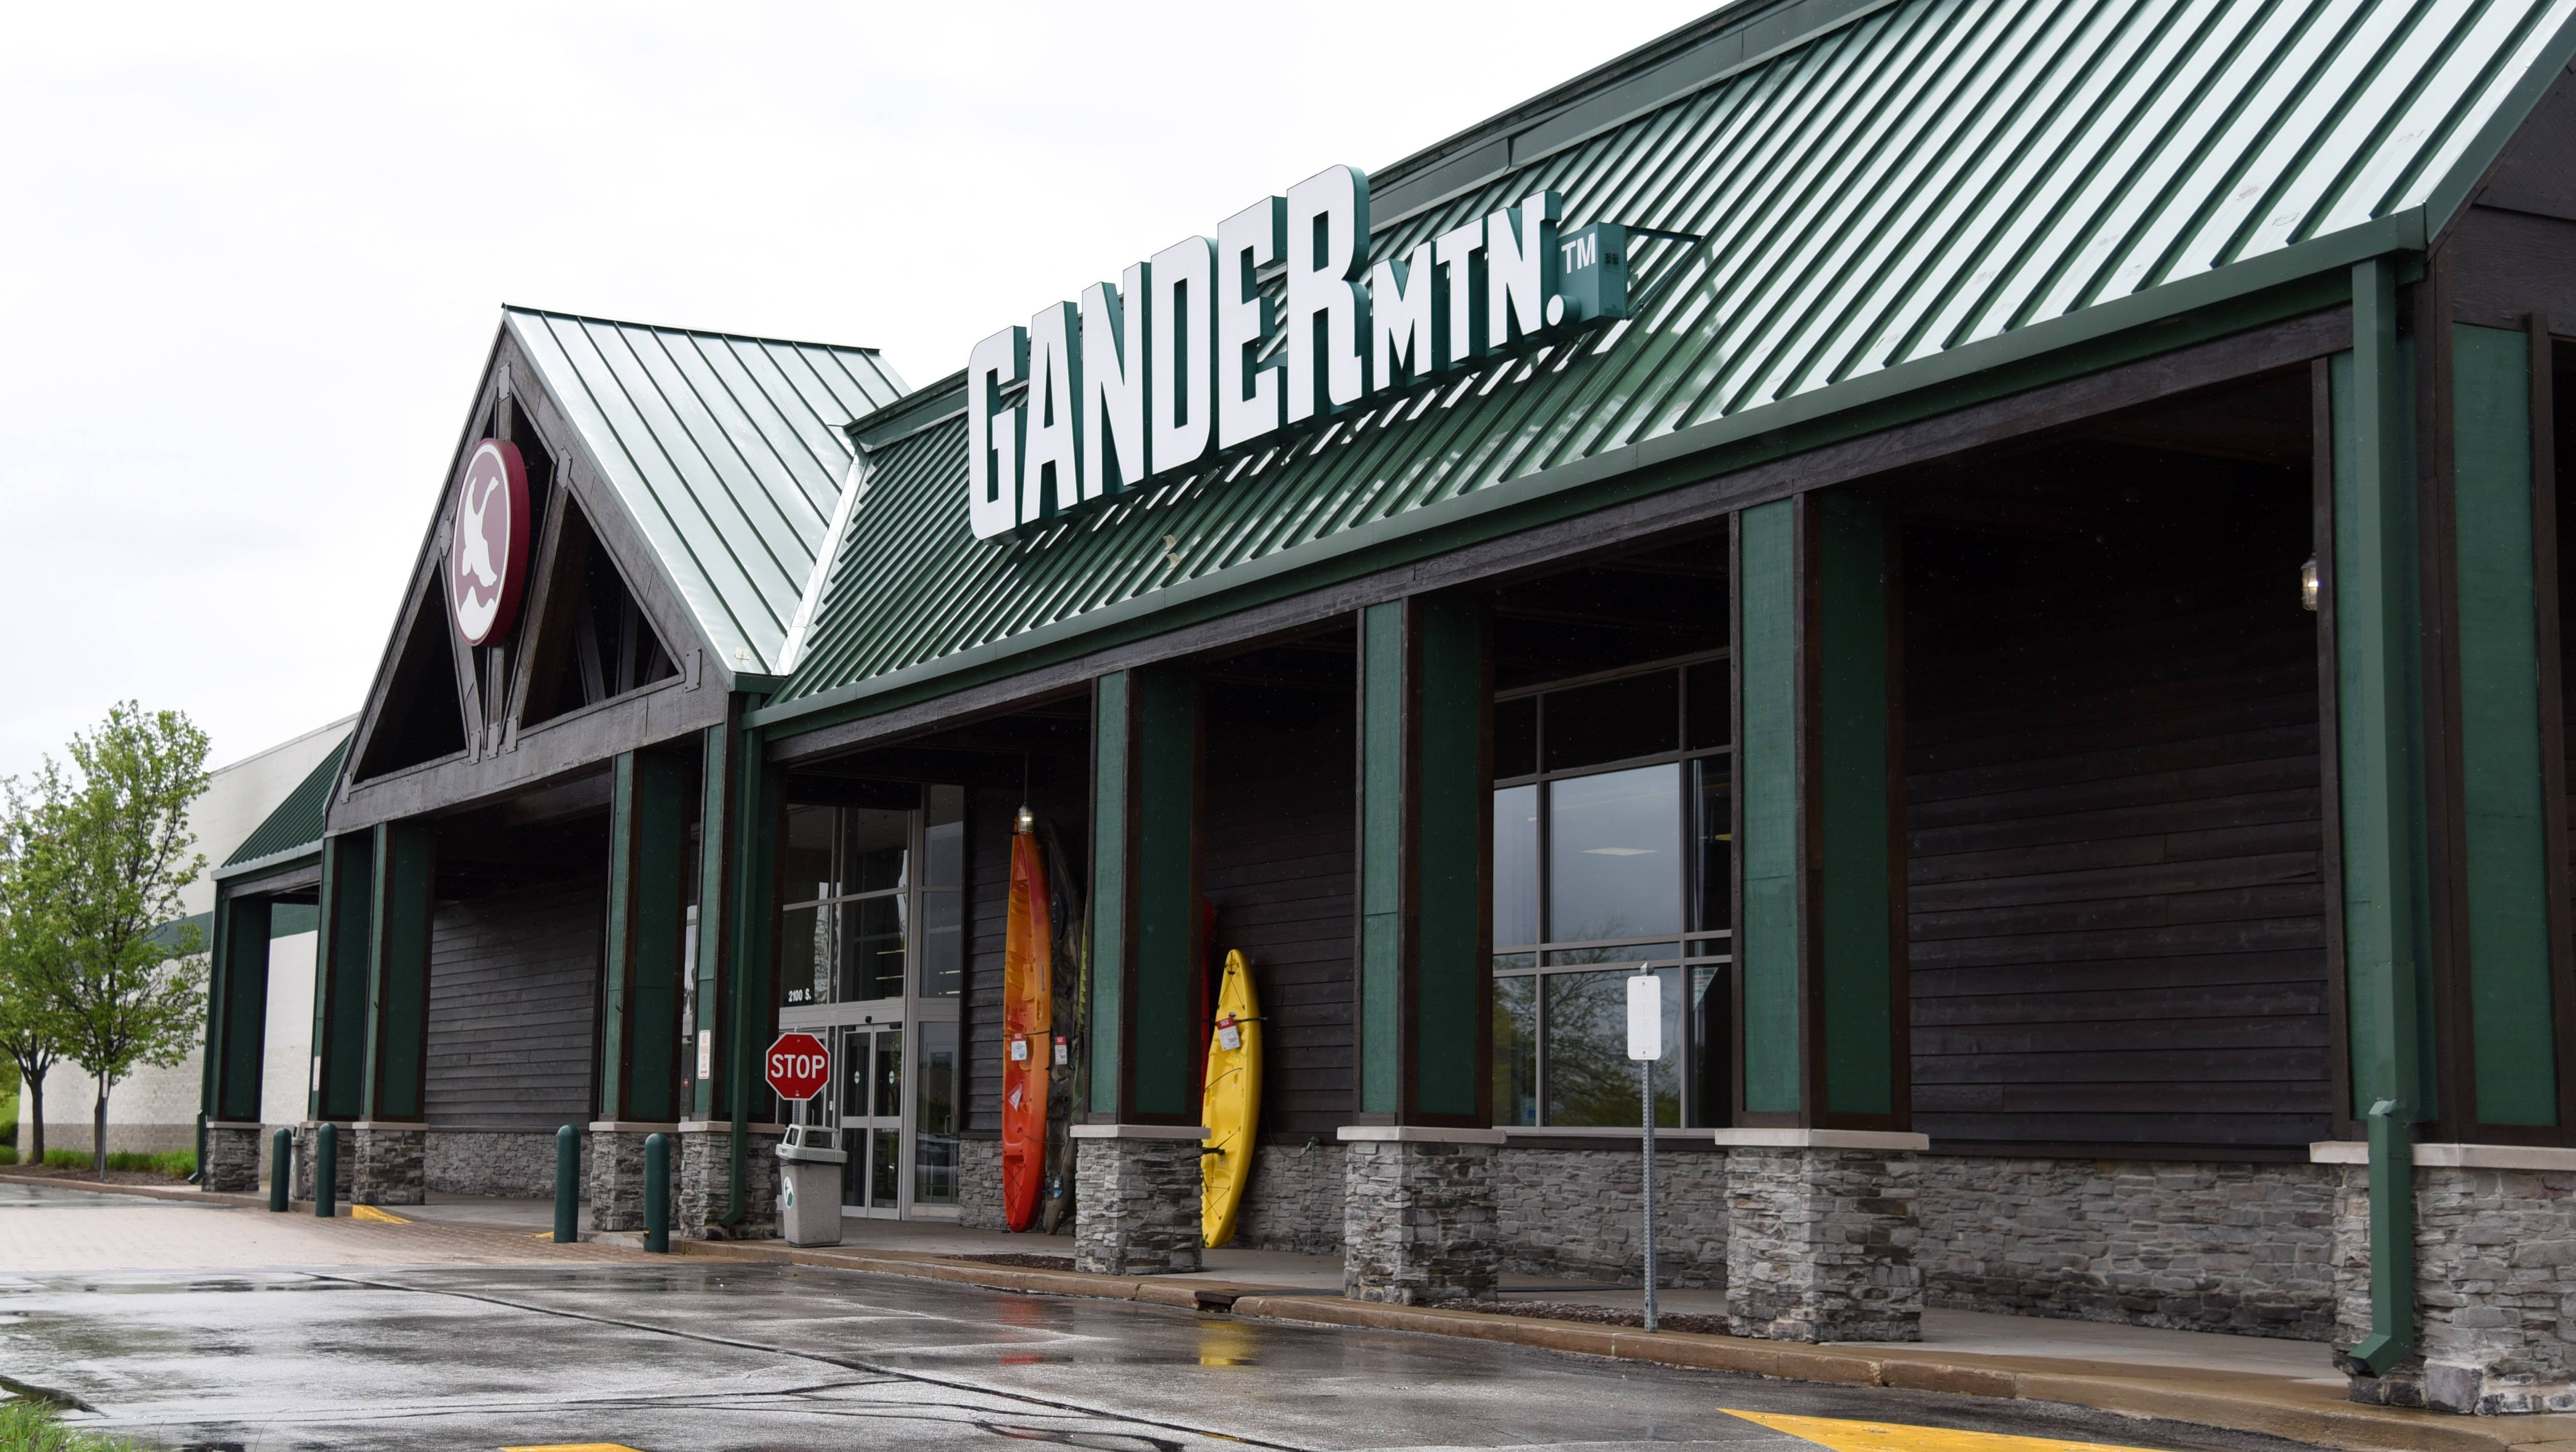 An At Home house-decorations store is planning to move in to the former Gander Mountain space in the Fabyan Crossing shopping center on Randall Road.